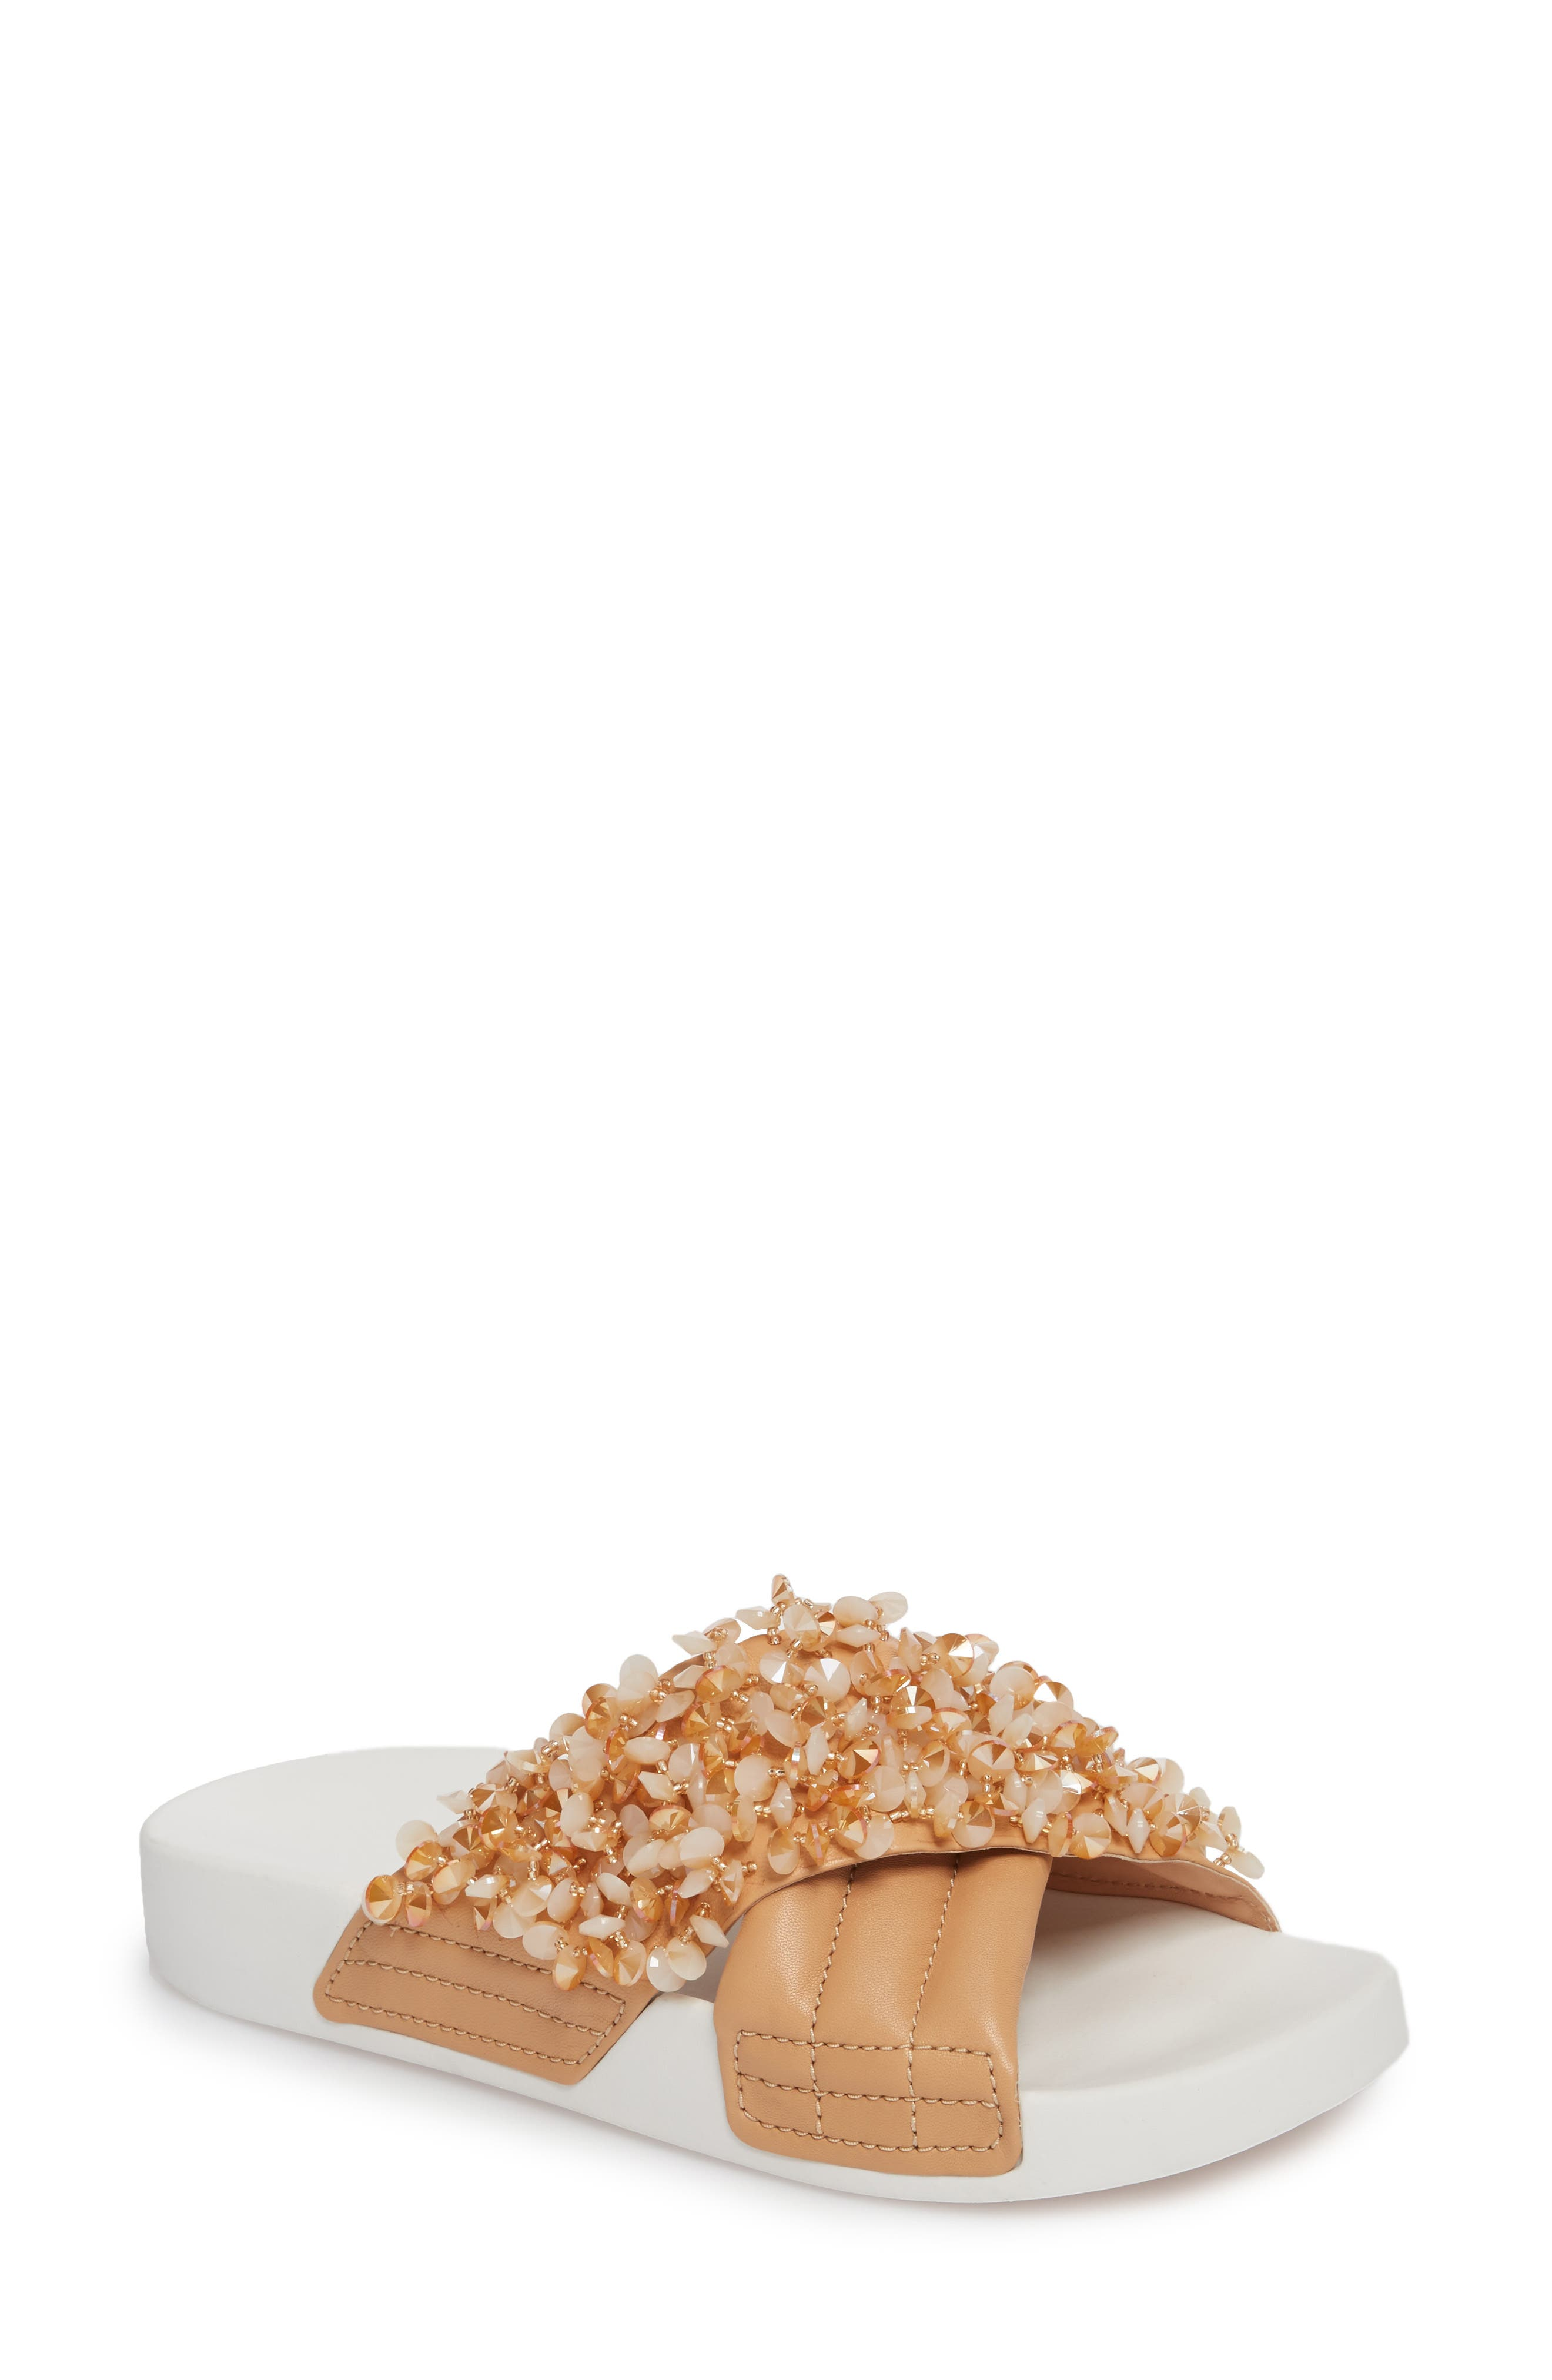 Logan Embellished Slide Sandal,                         Main,                         color, Natural Vachetta/ Cassia